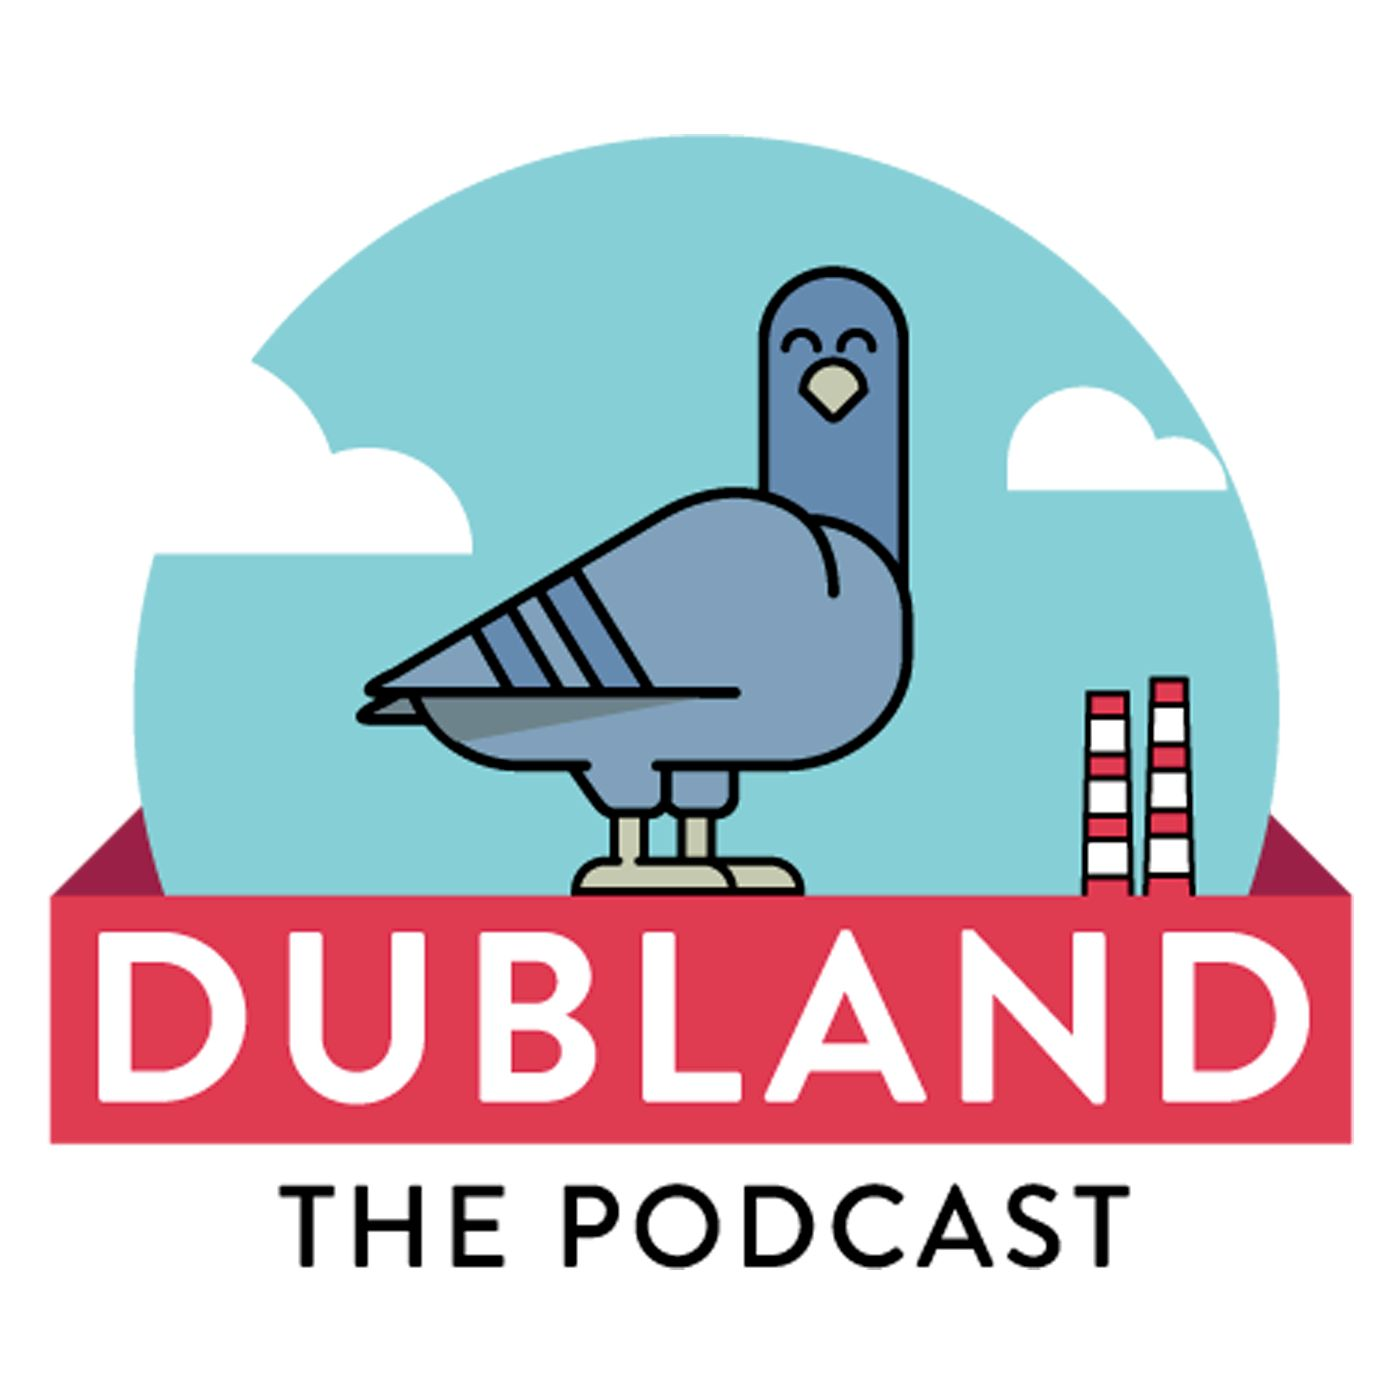 DUBLAND The Podcast